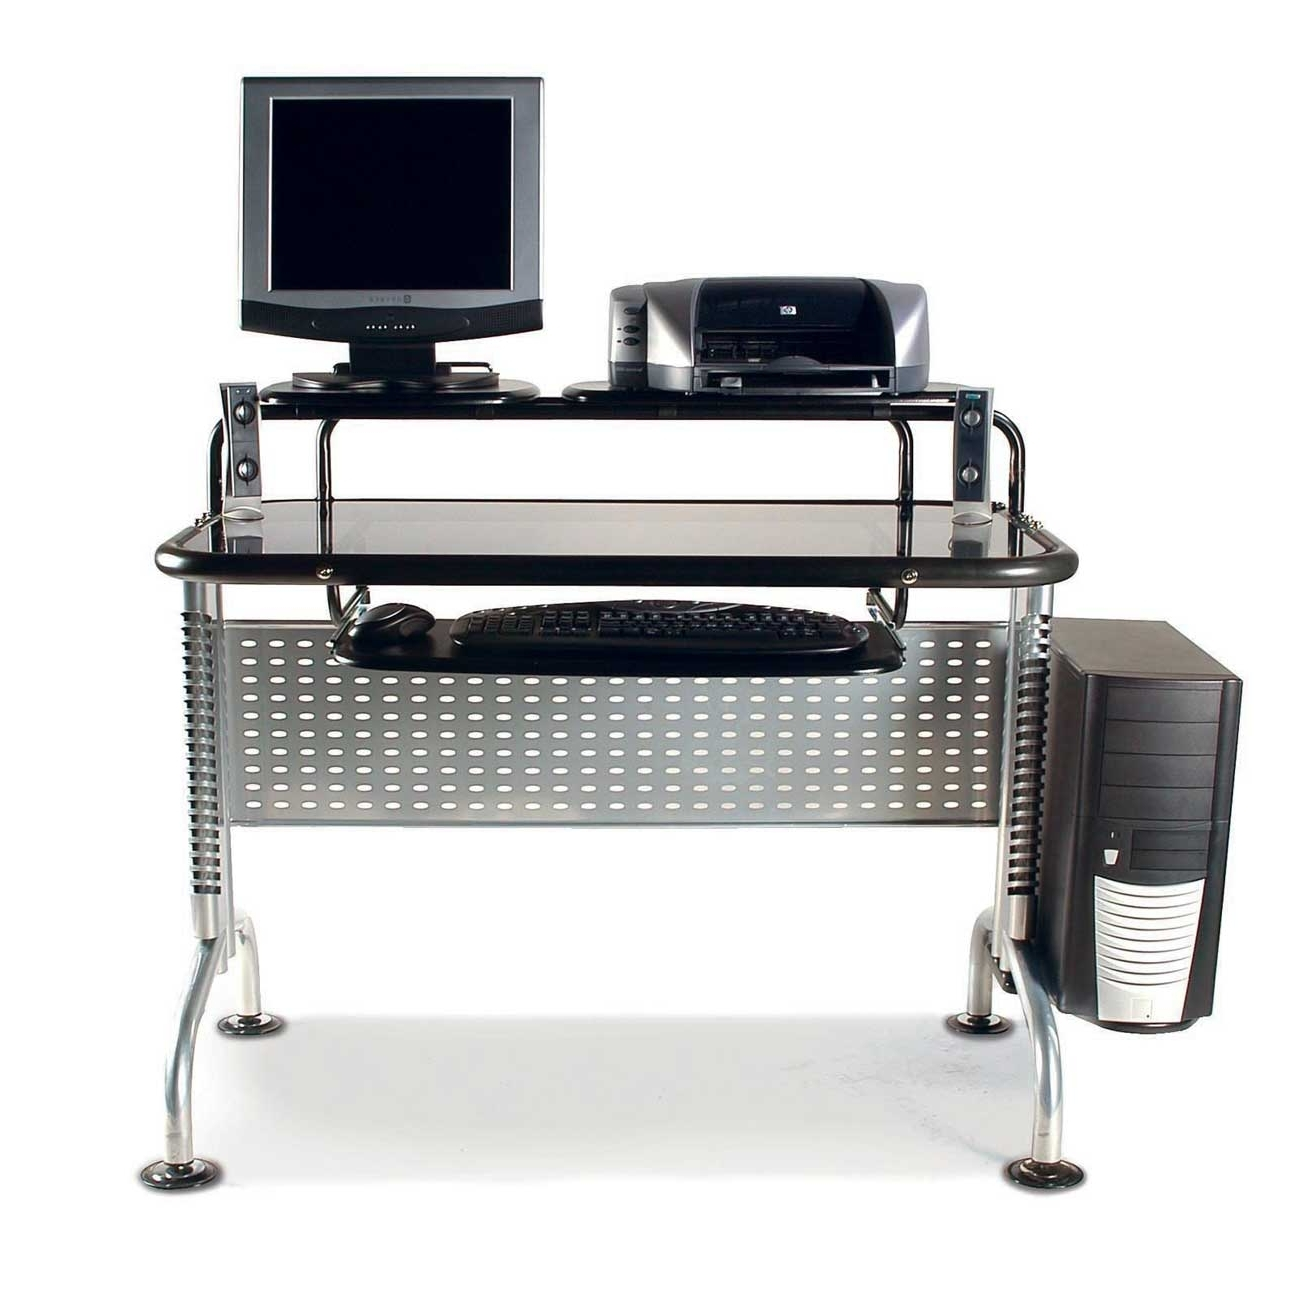 Favorite Captivating Ideas Ergonomic Computer Desk With Keyboard Tray Throughout Computer Desks Ergonomic For Home (View 11 of 20)